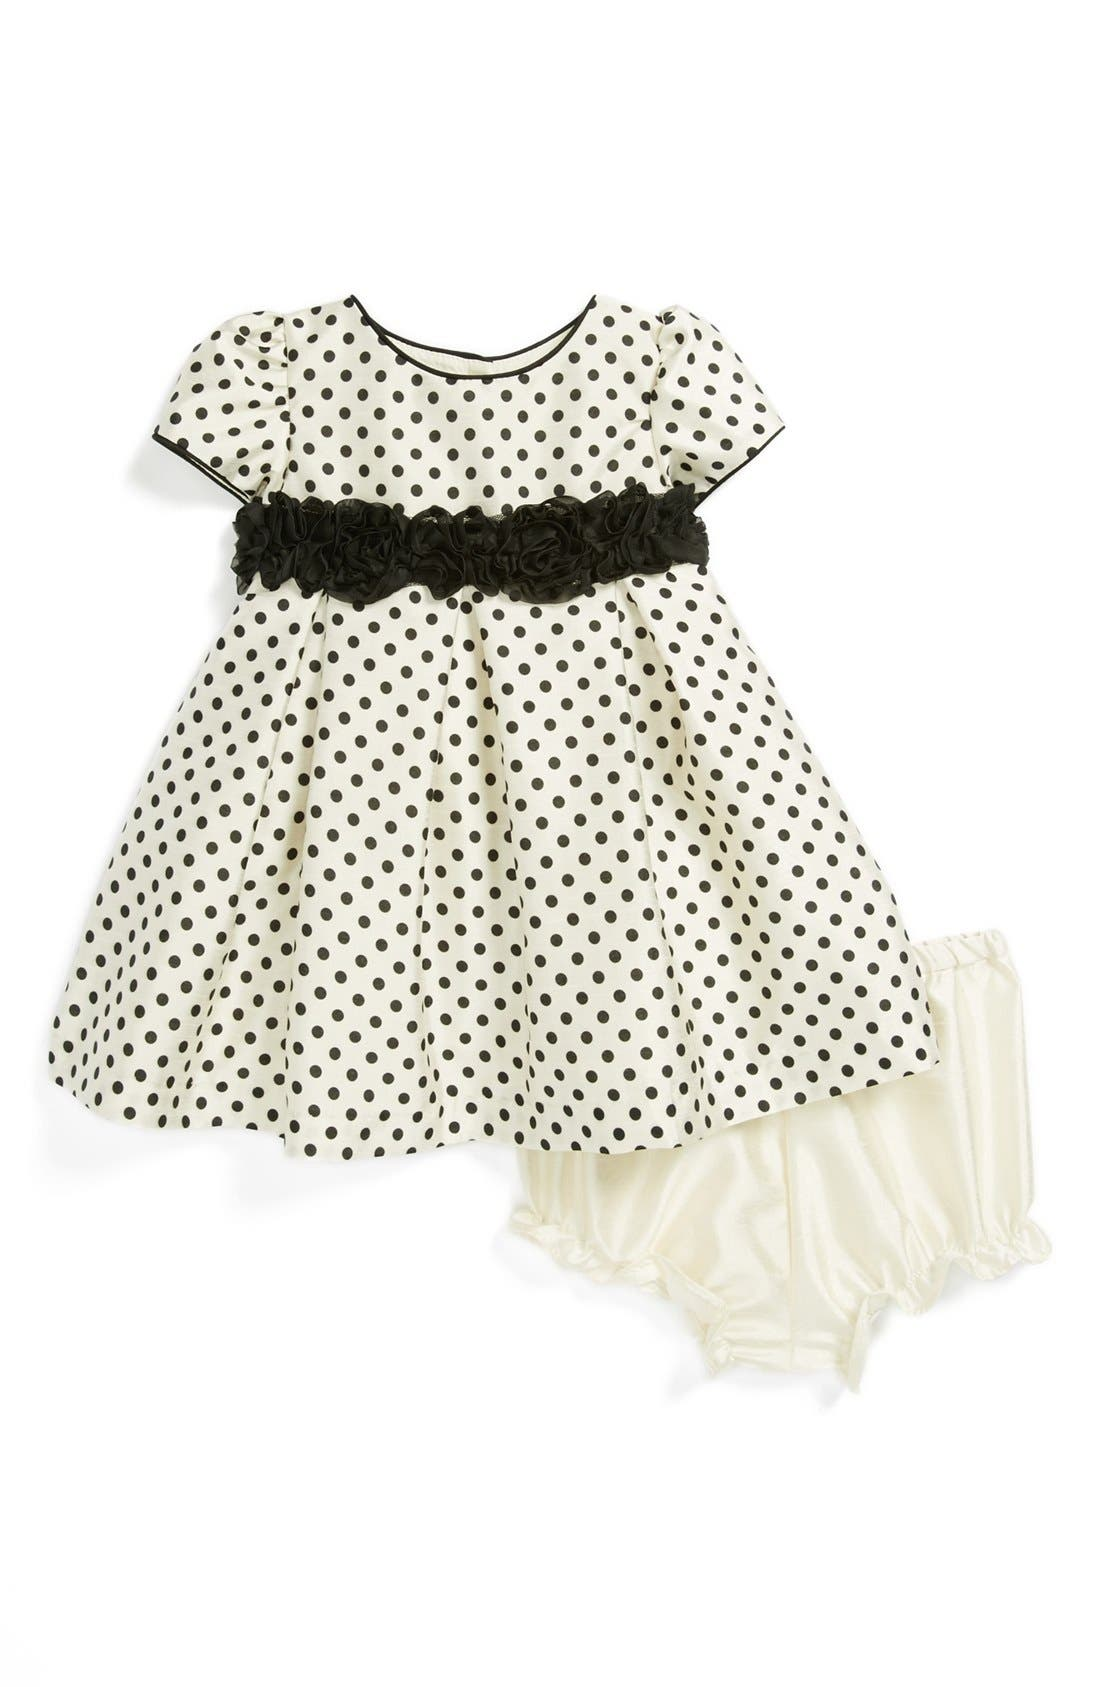 Main Image - Pippa & Julie Dress & Bloomers (Baby Girls)